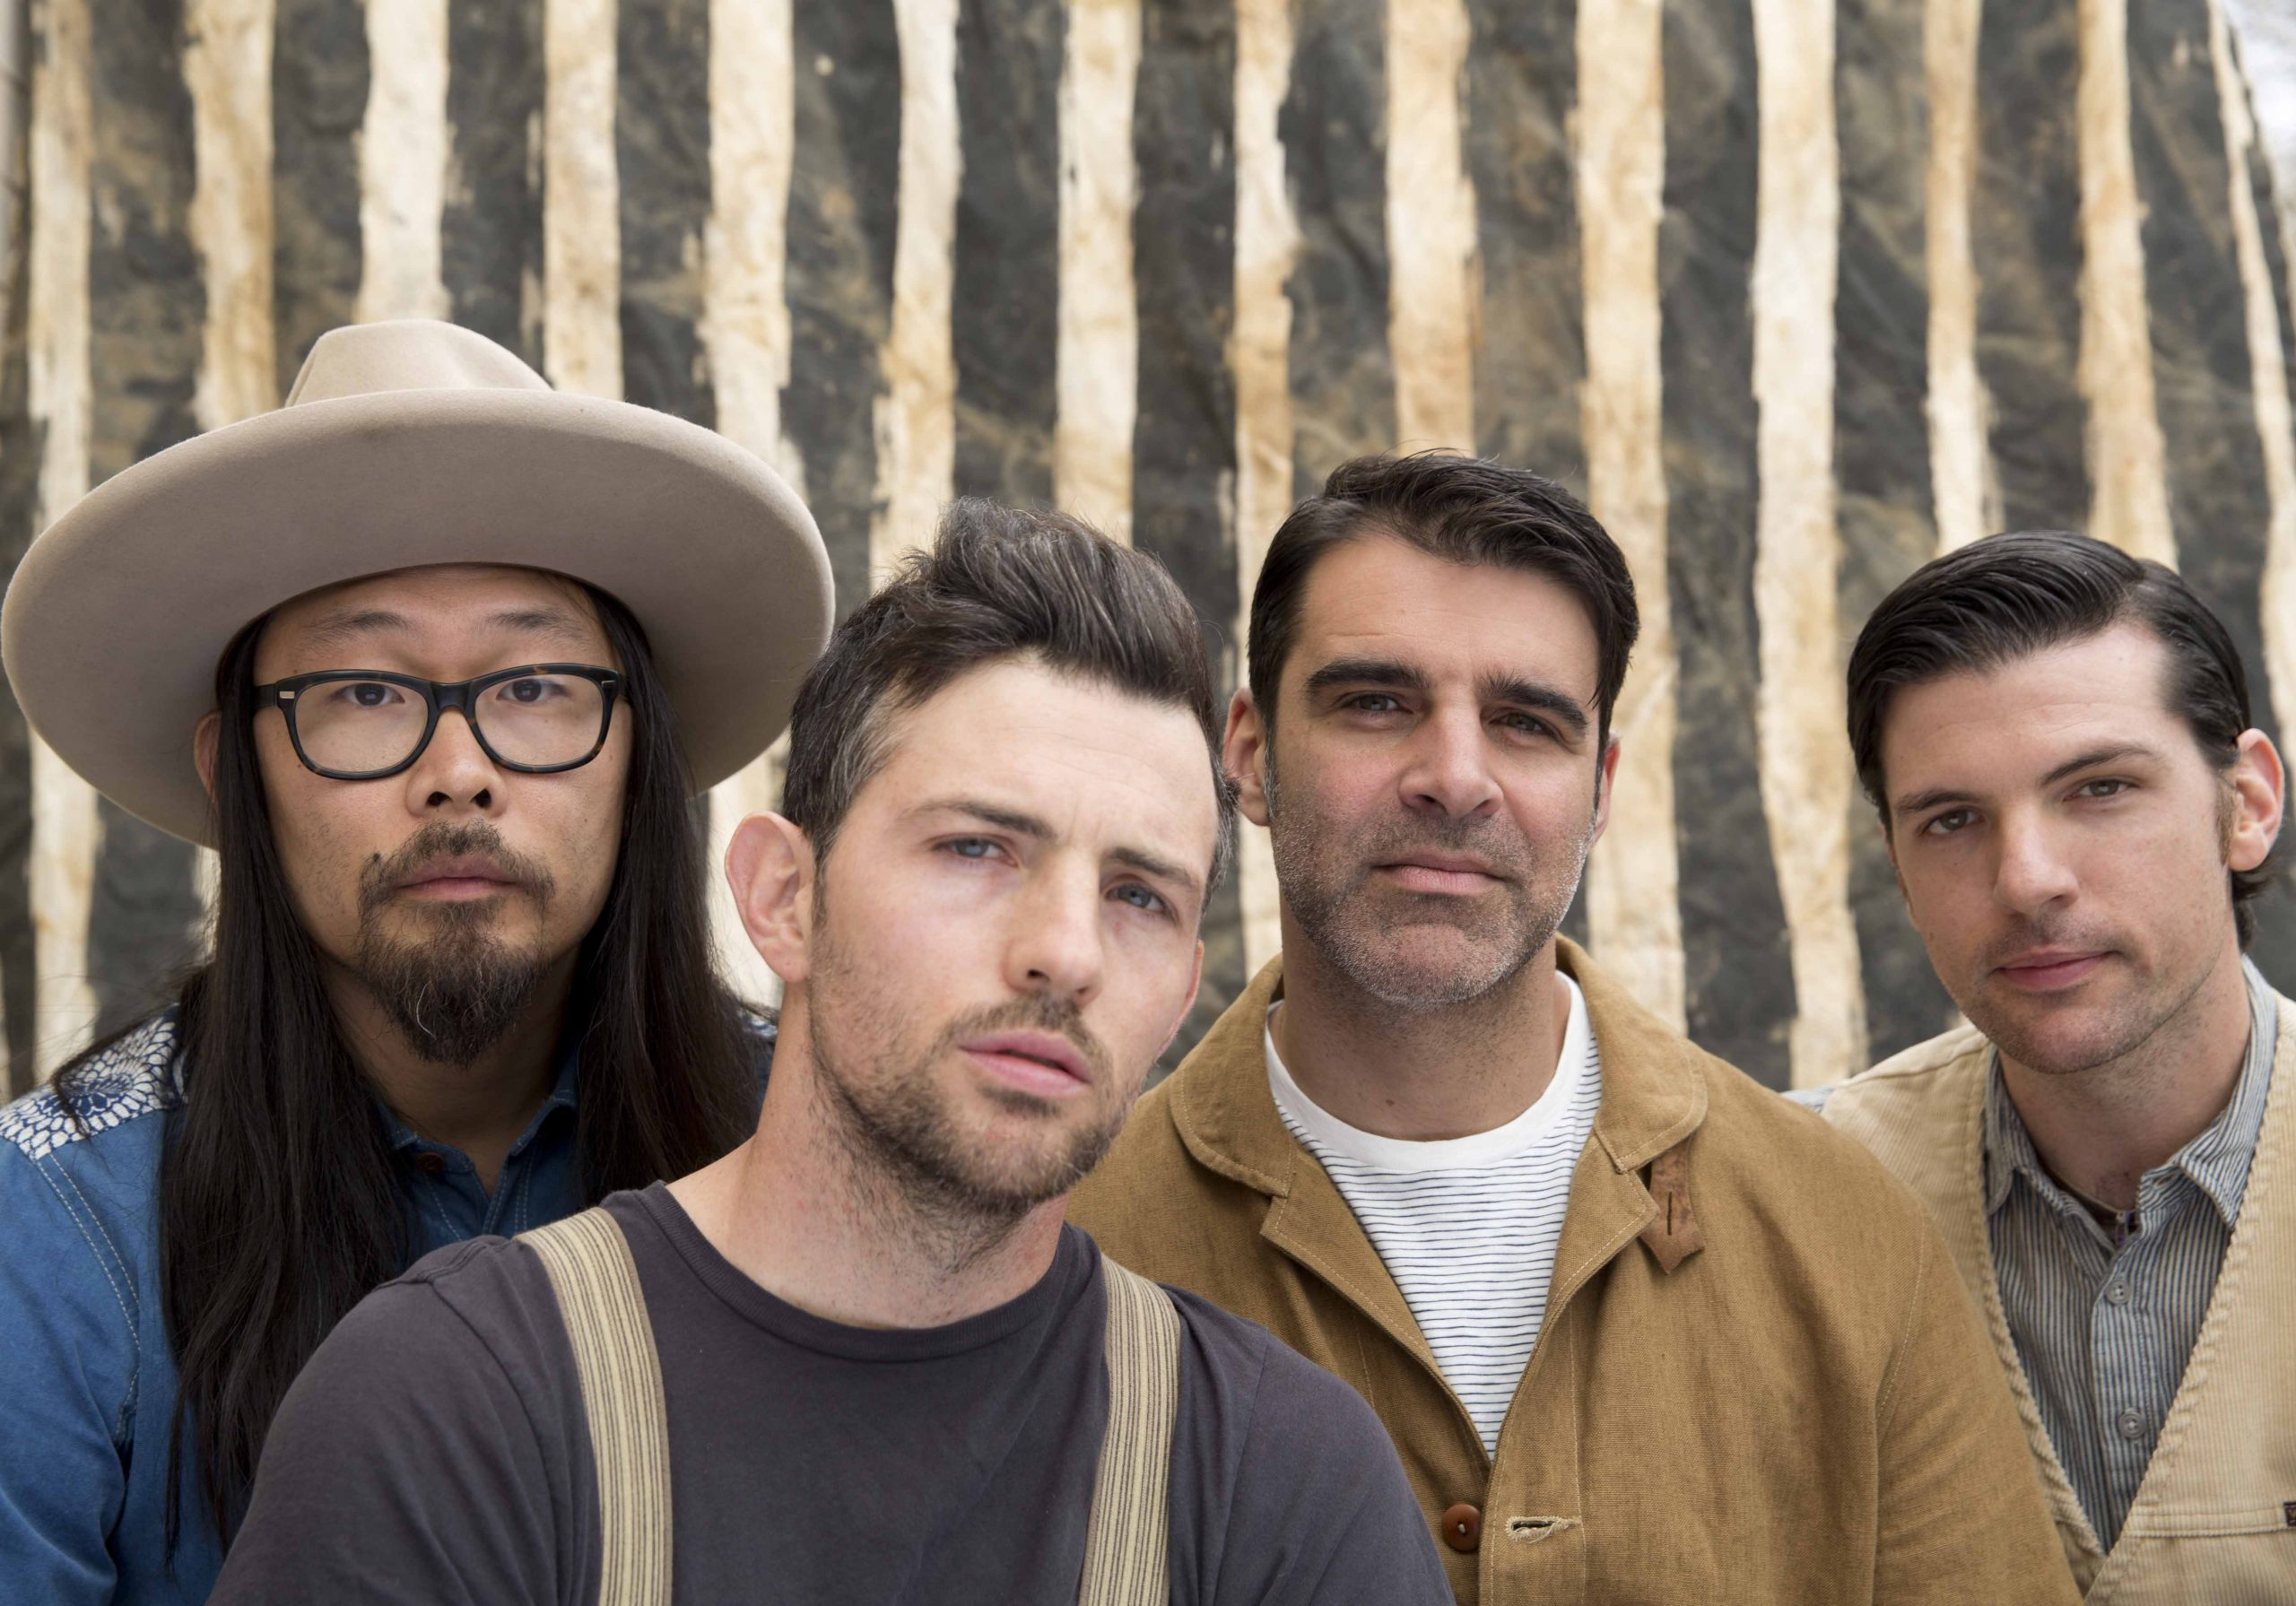 GIVEAWAY - Win tickets to the Avett Brothers at the Greek Theatre (LA) 8/11